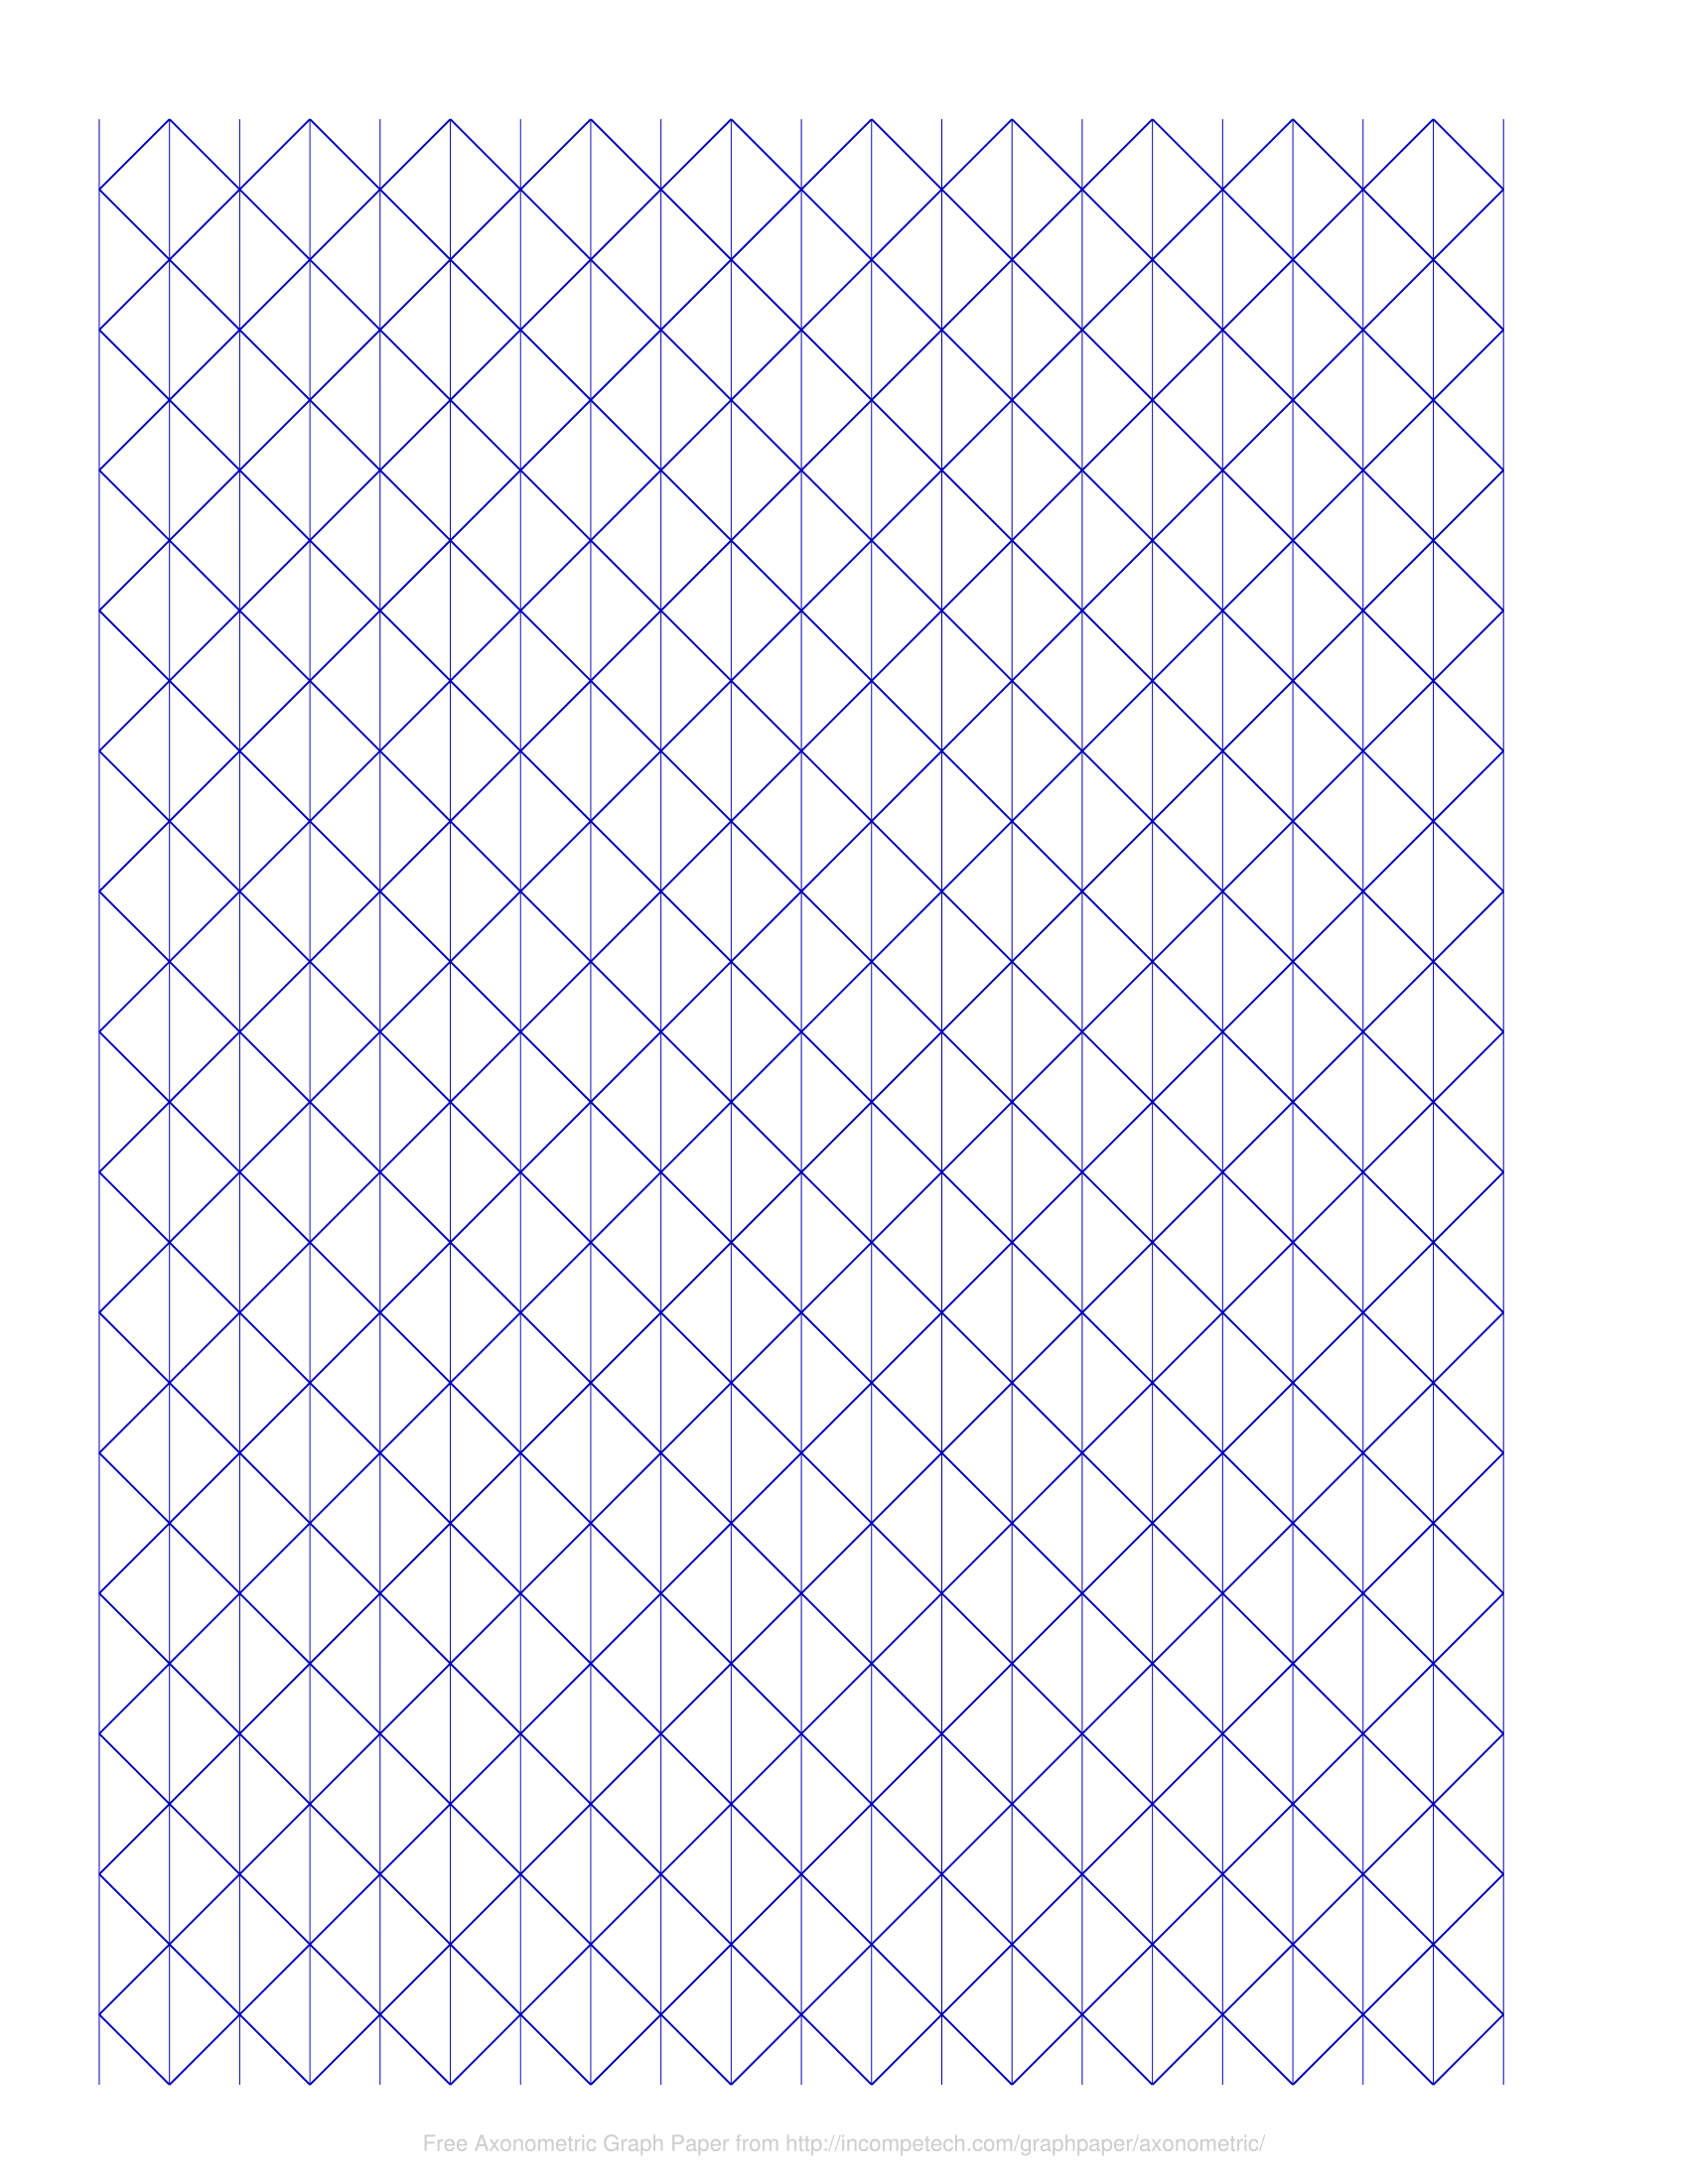 free online graph paper    axonometric